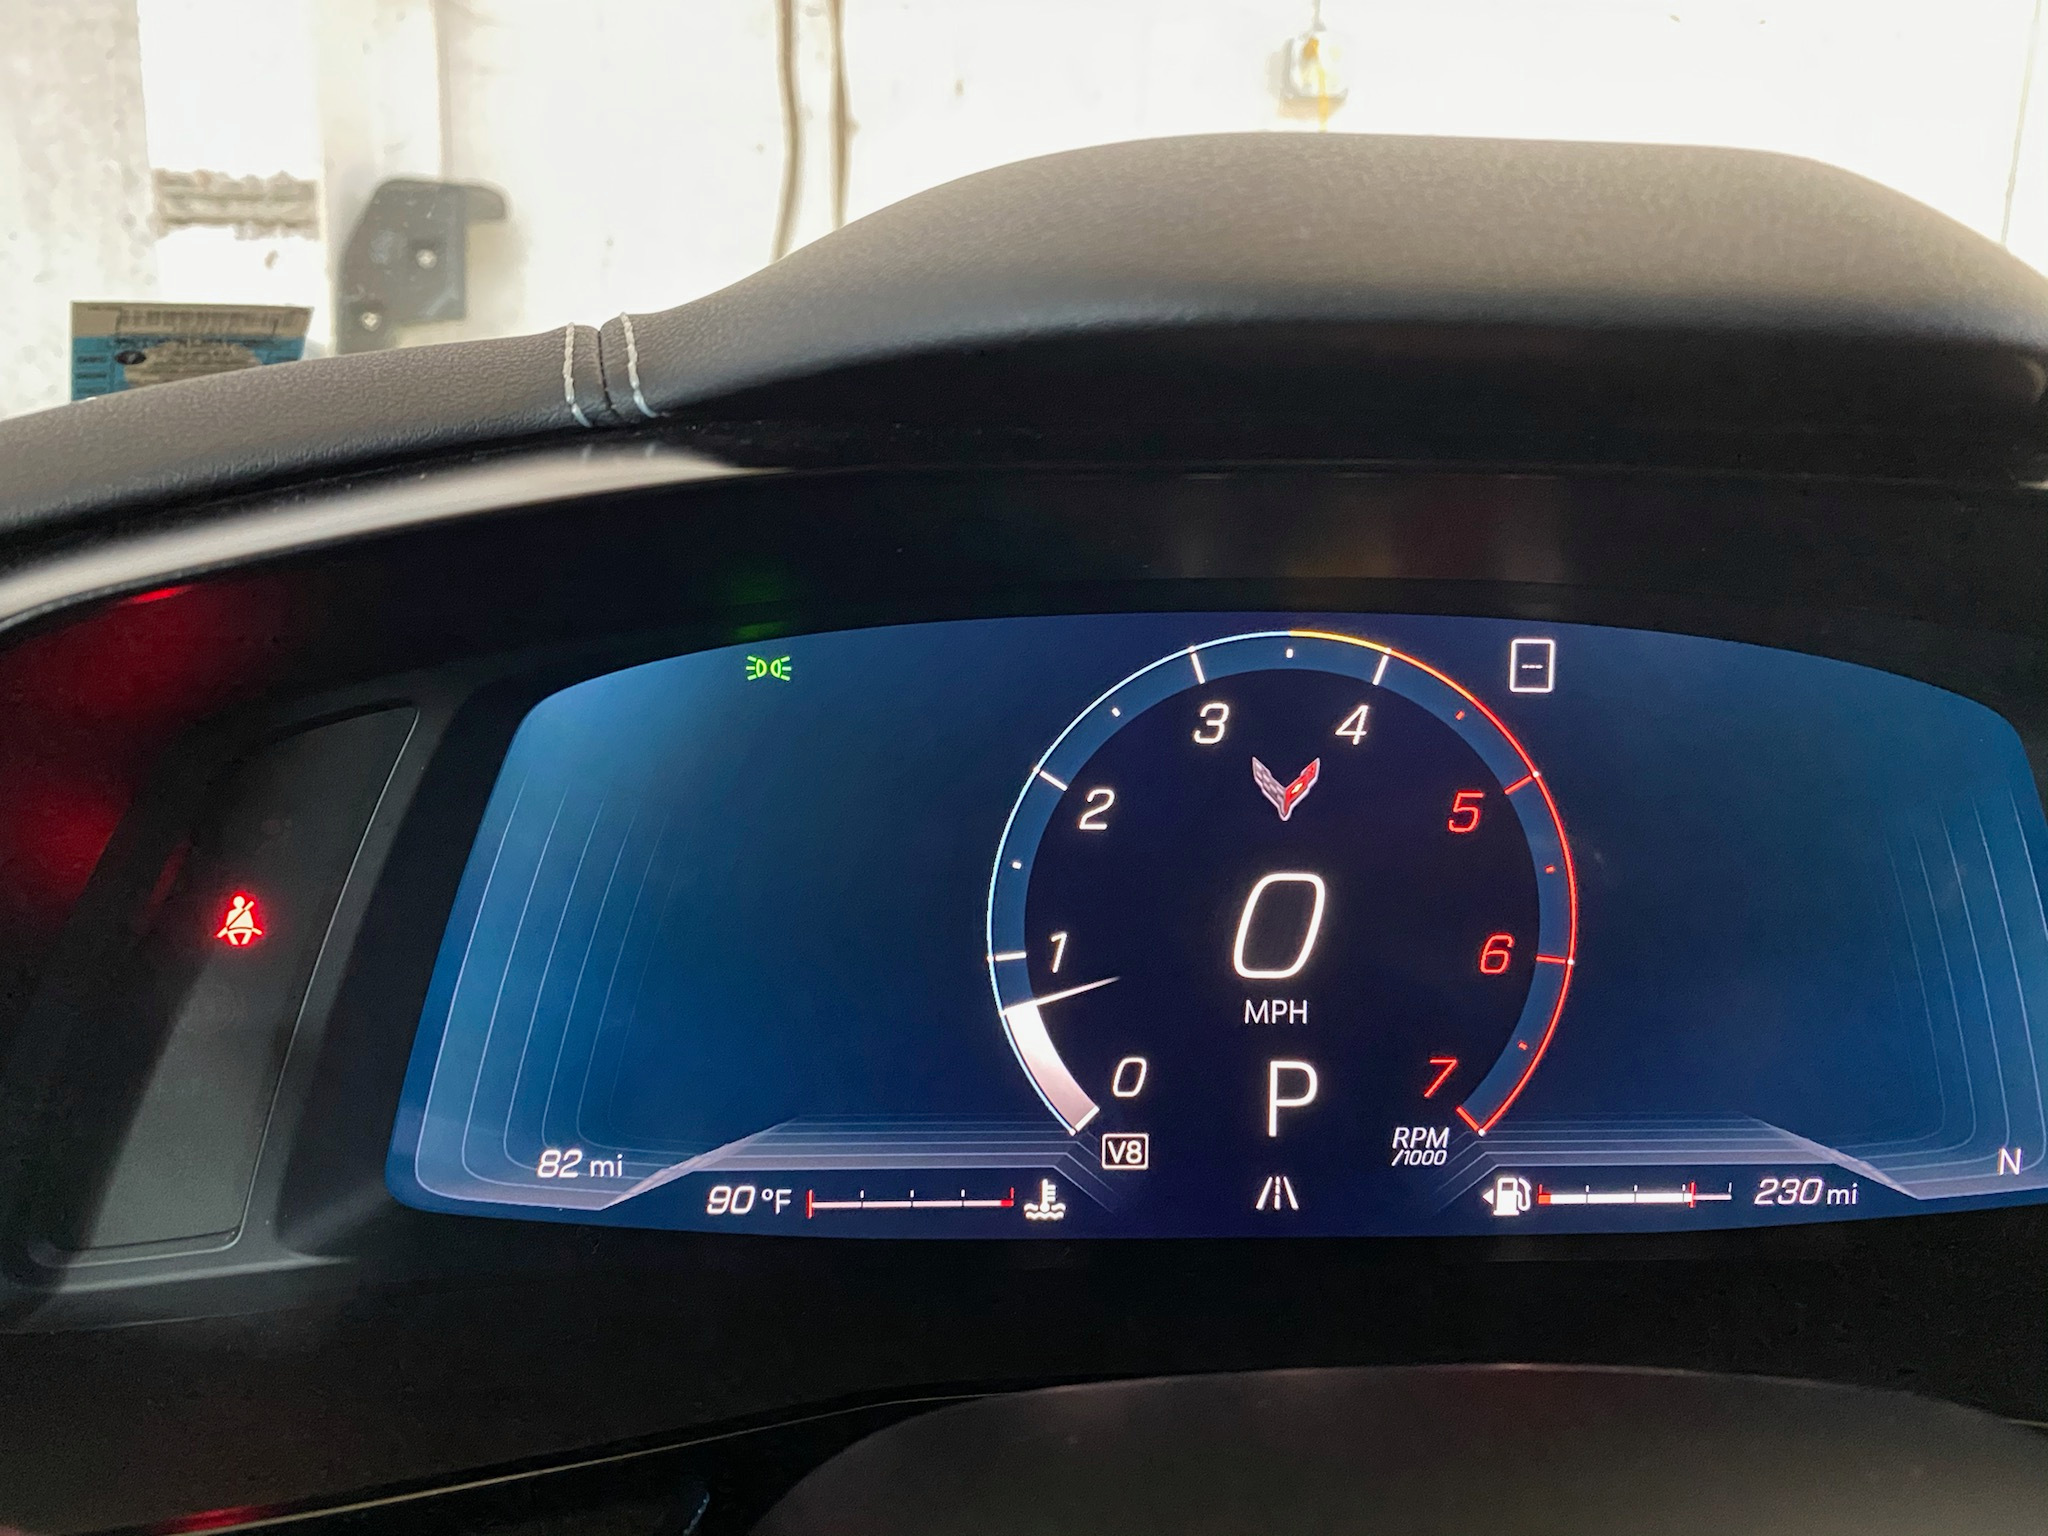 For Sale: A 2020 Mid-Engine Corvette Coupe with only 82 miles on the odometer!